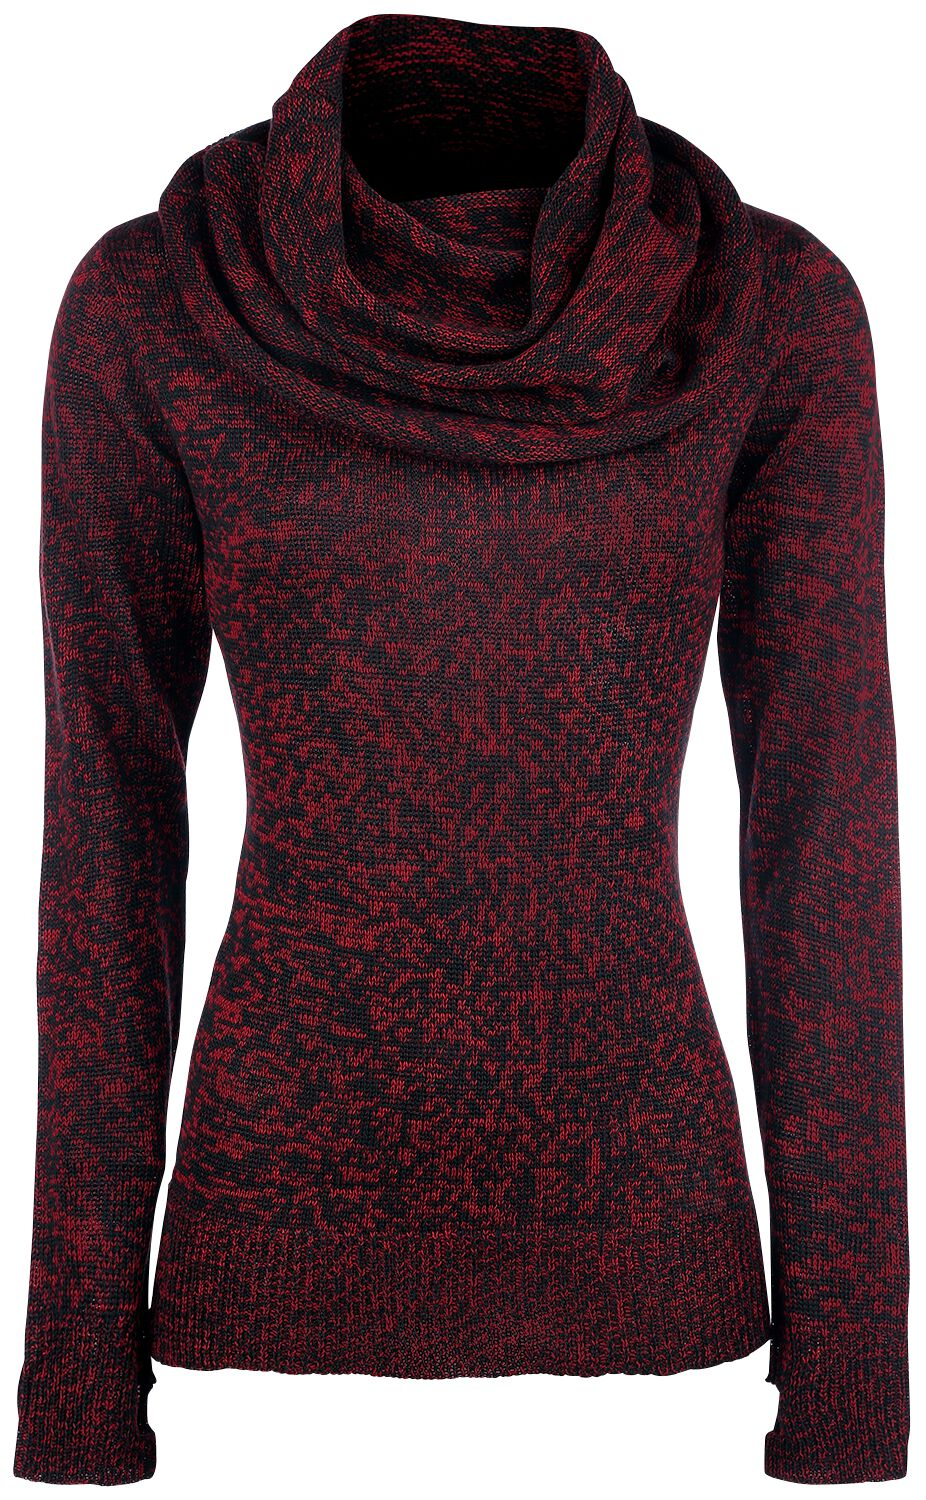 Image of Black Premium by EMP Up The Neck Pullover donna nero/rosso